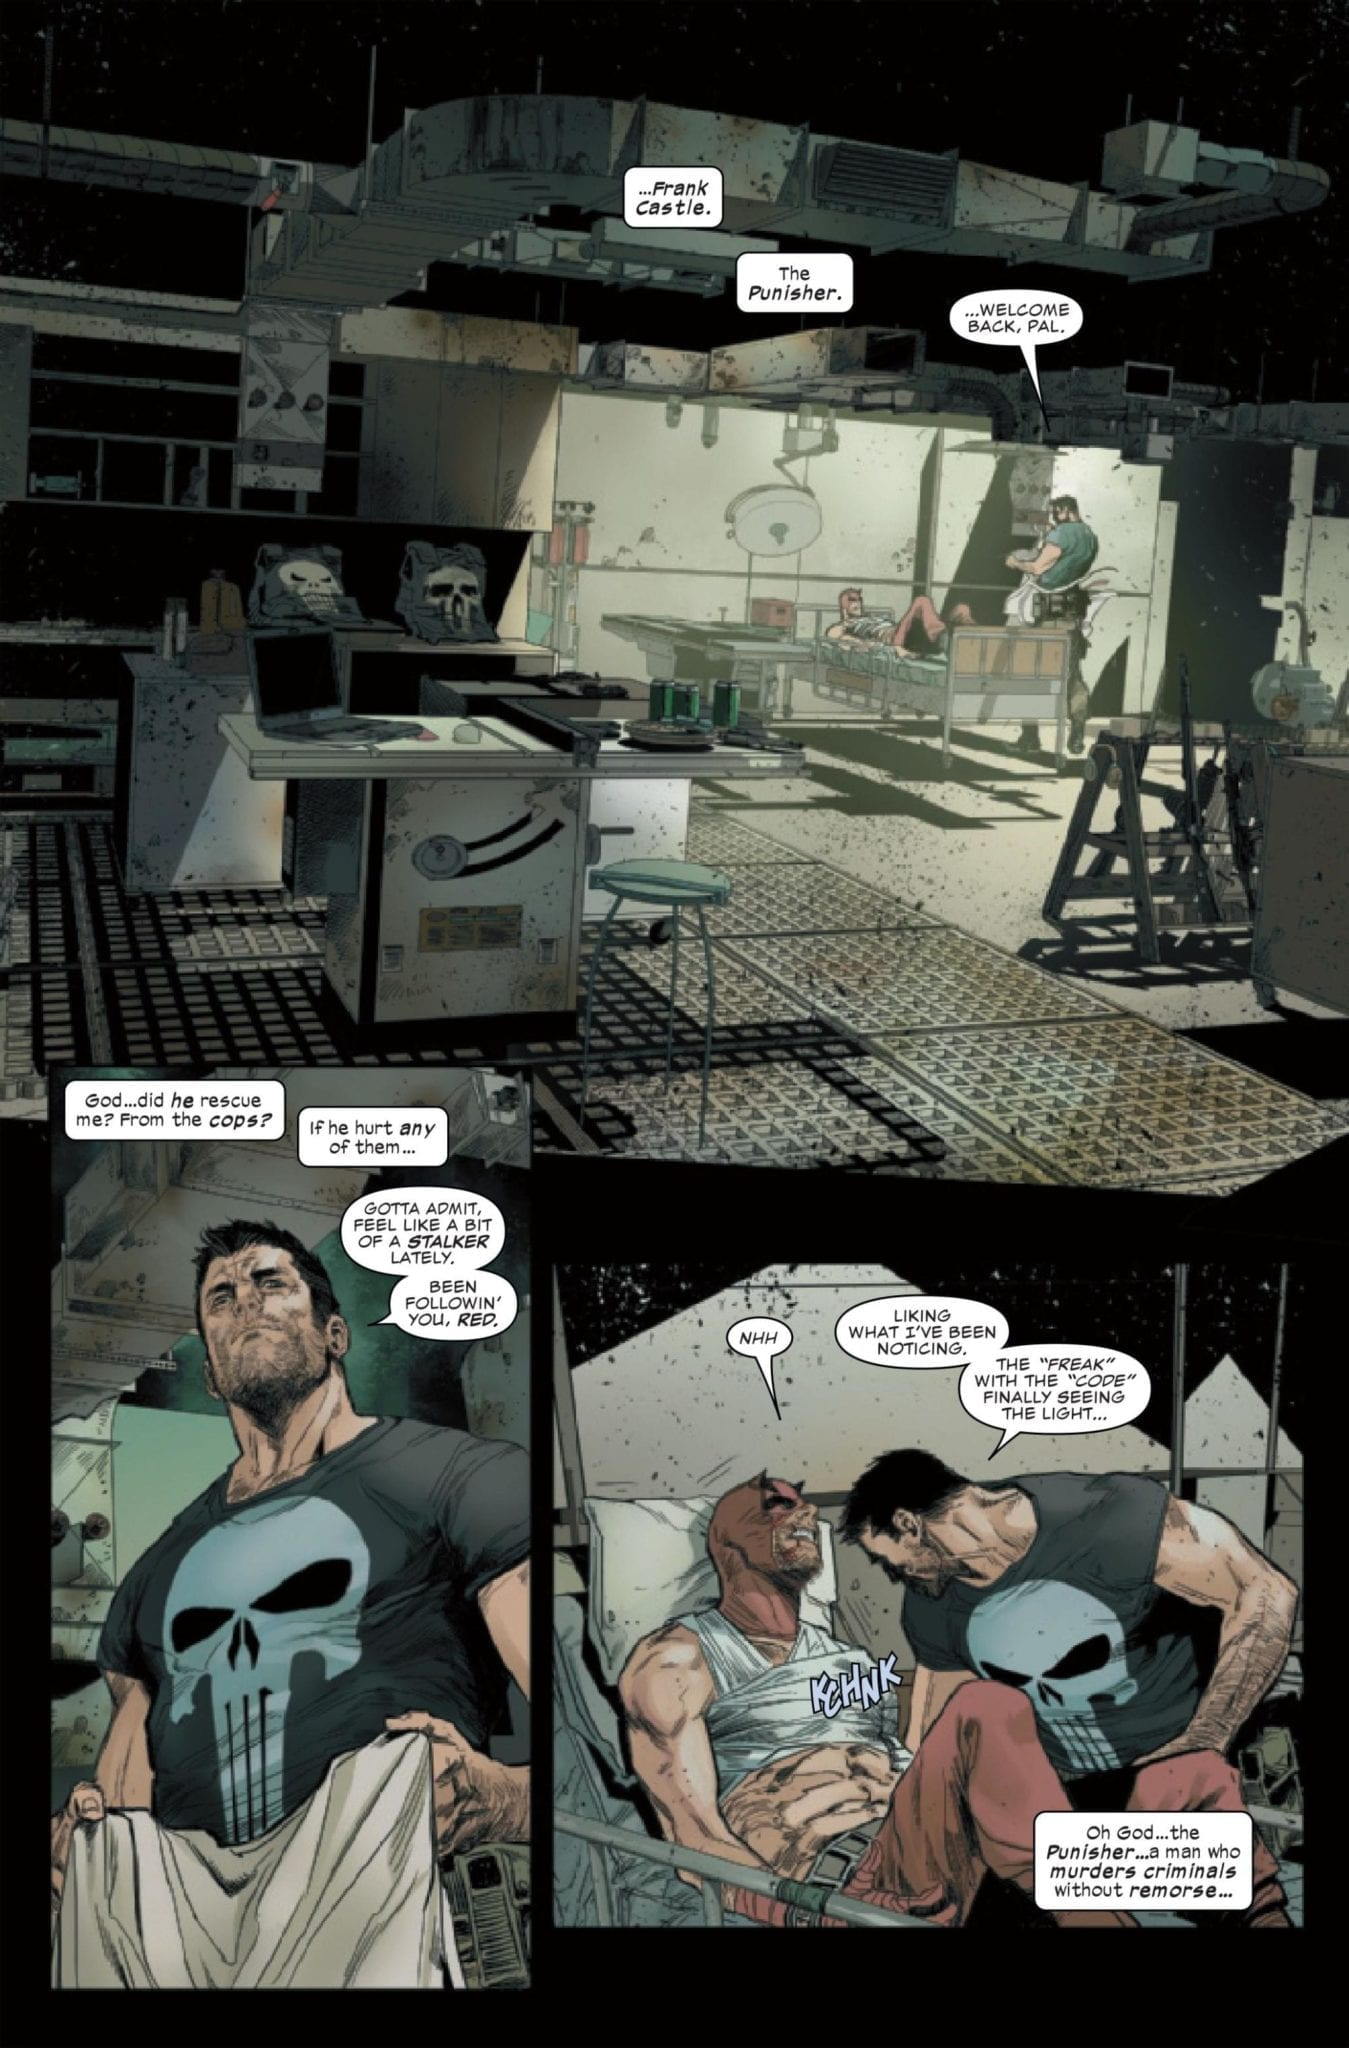 Frank Castle confronts Matt Murdock